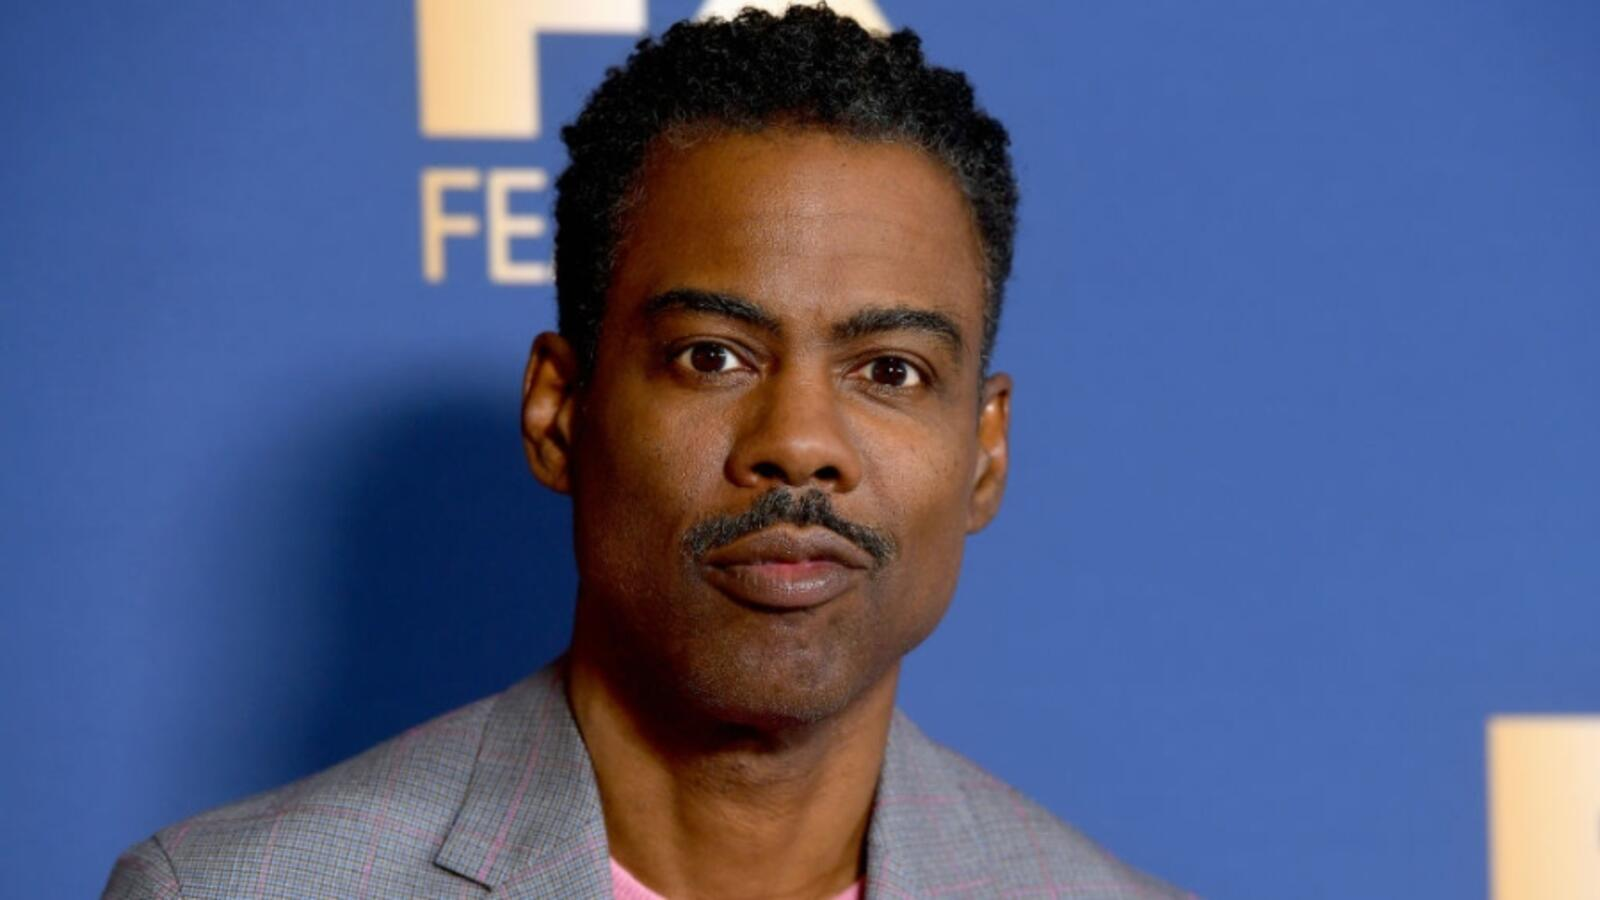 Chris Rock Reveals He Tested Positive For COVID-19